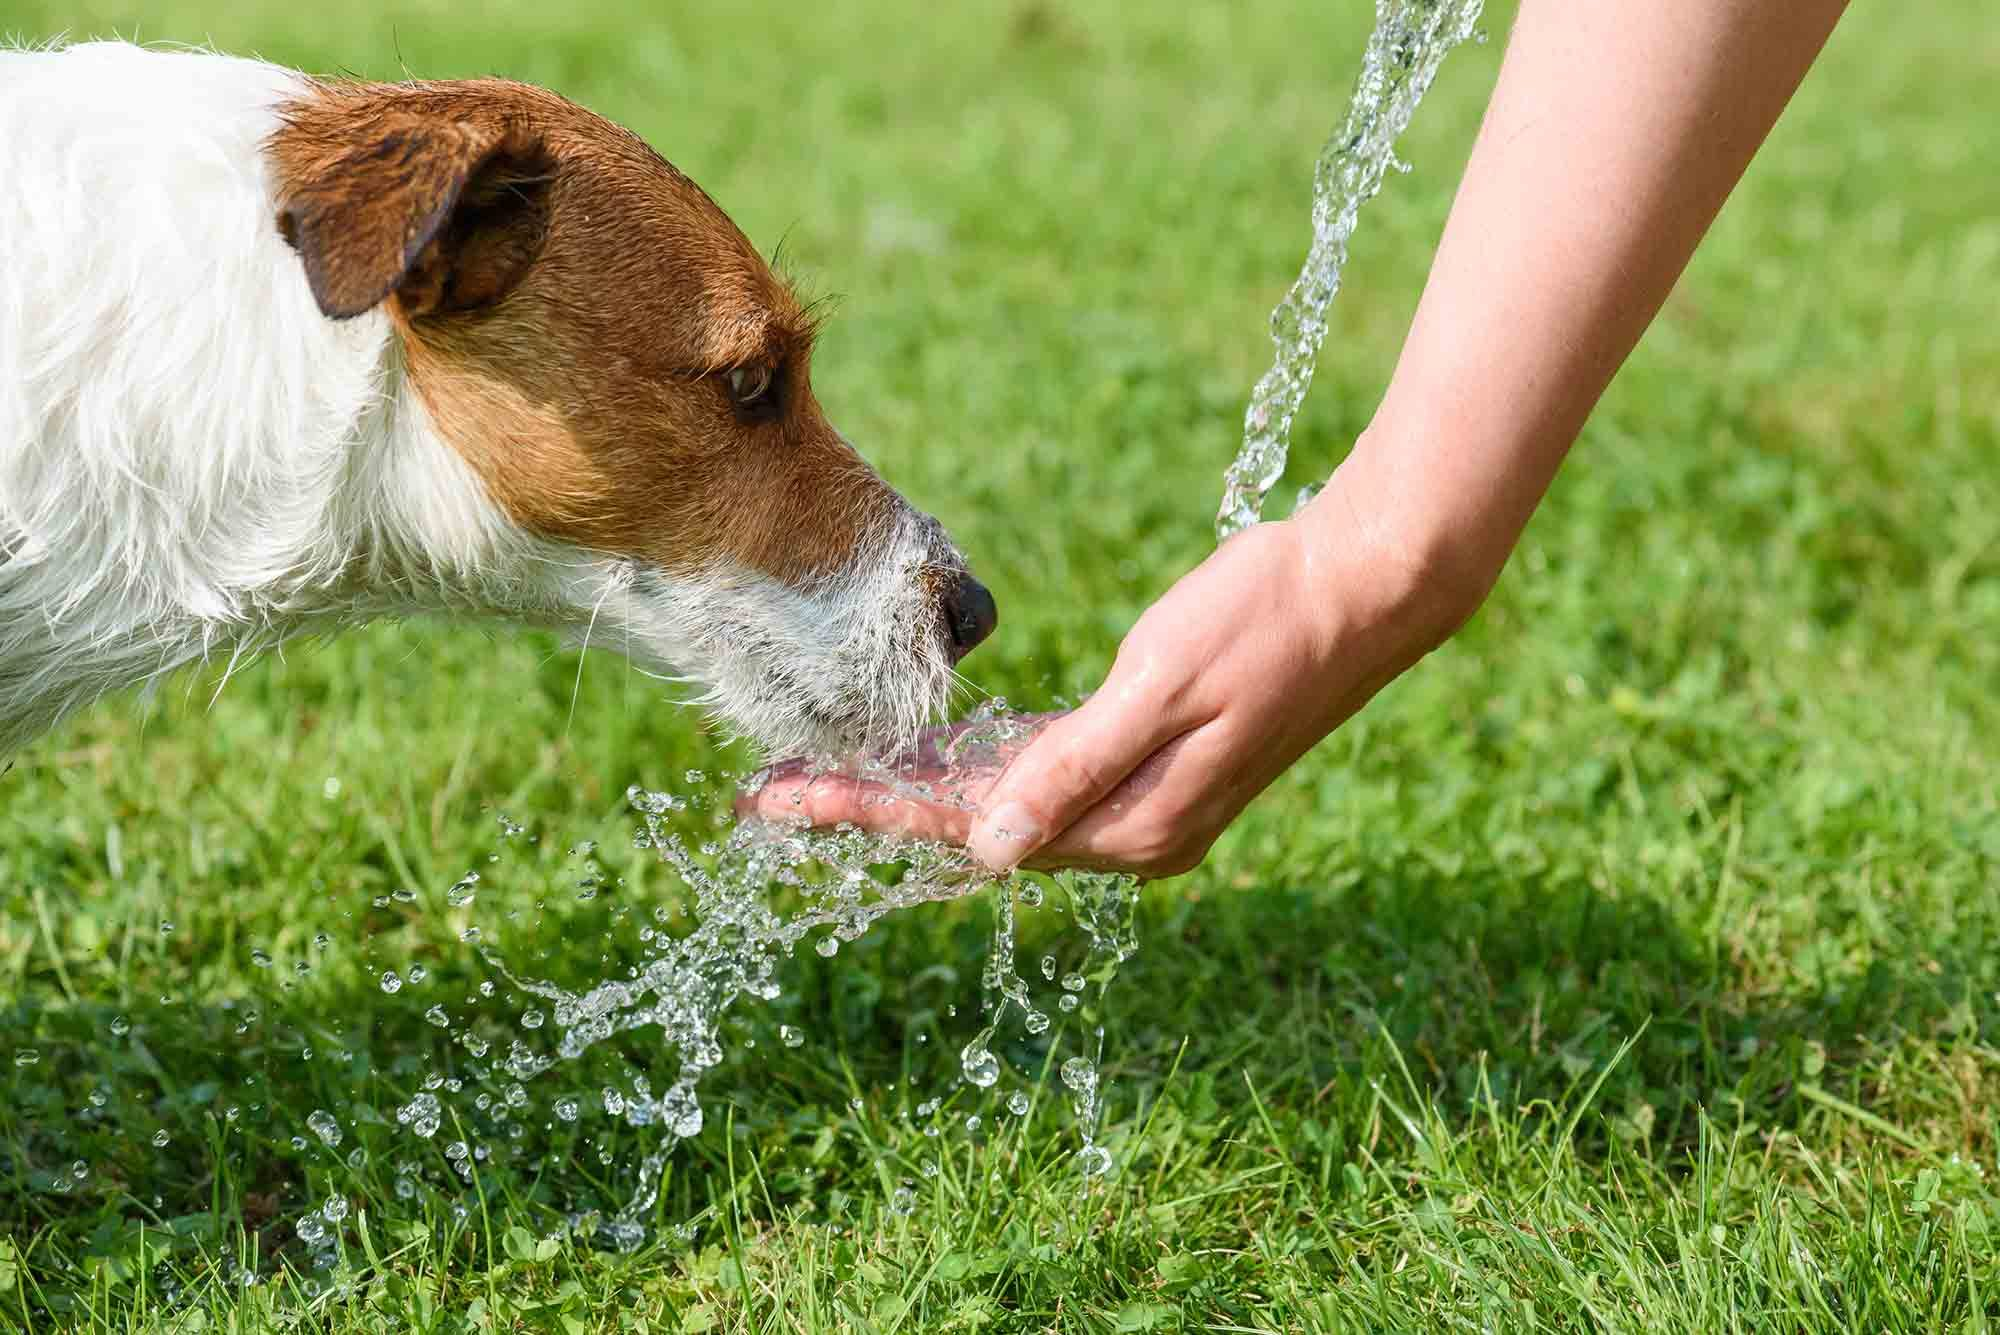 Summer pet safety is an important part of summer fun with pets!